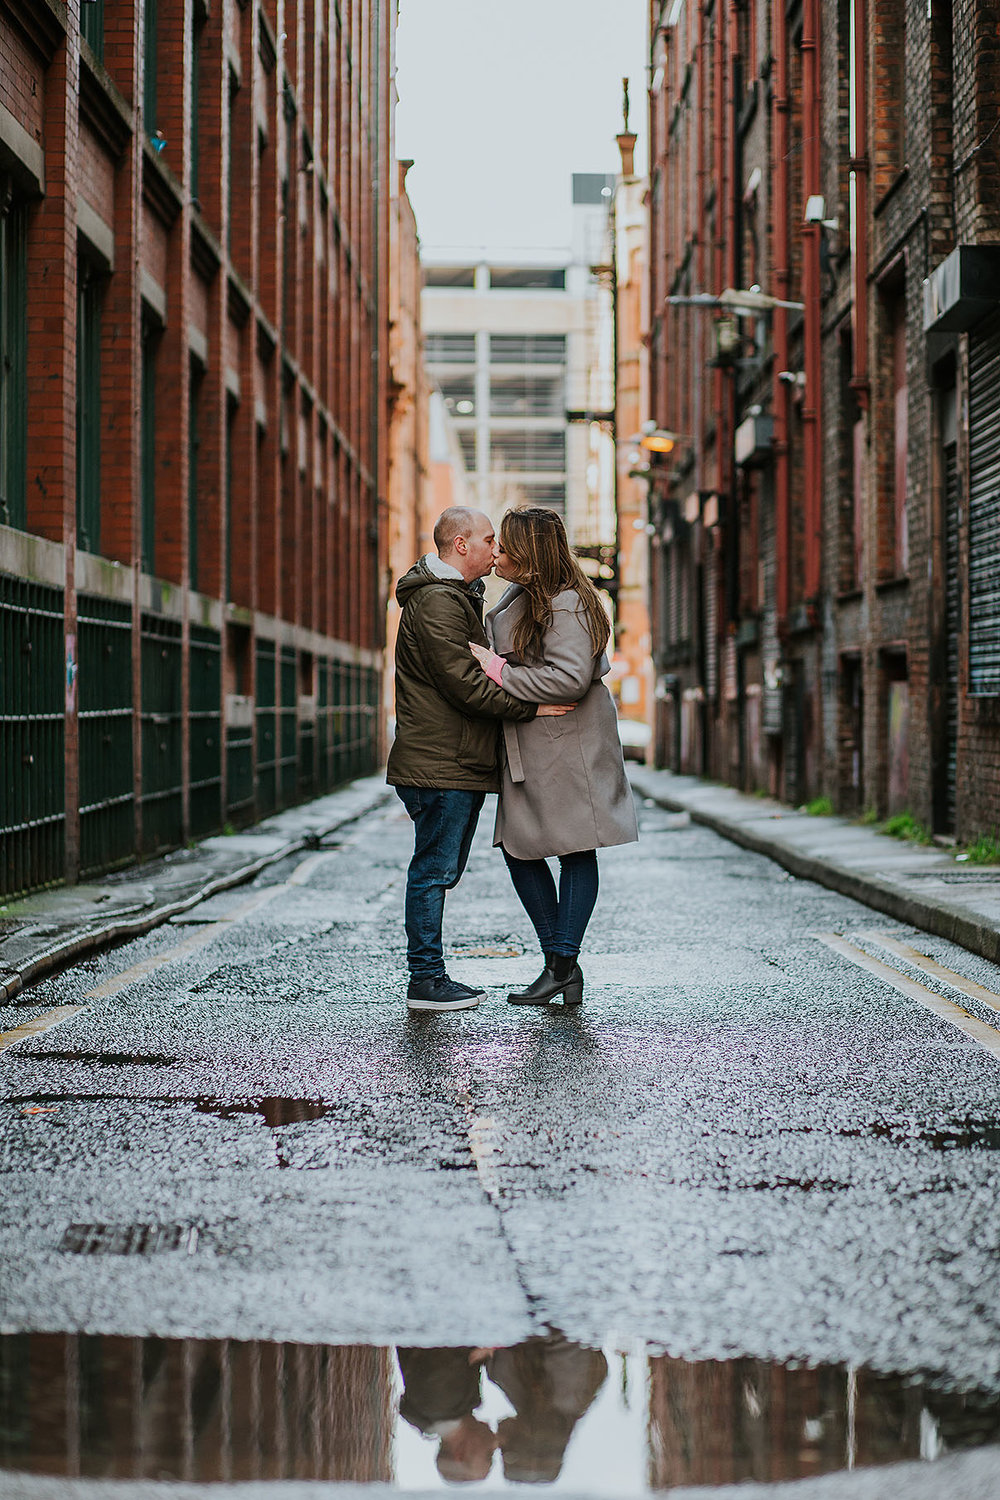 Alternative wedding photographer in Manchester